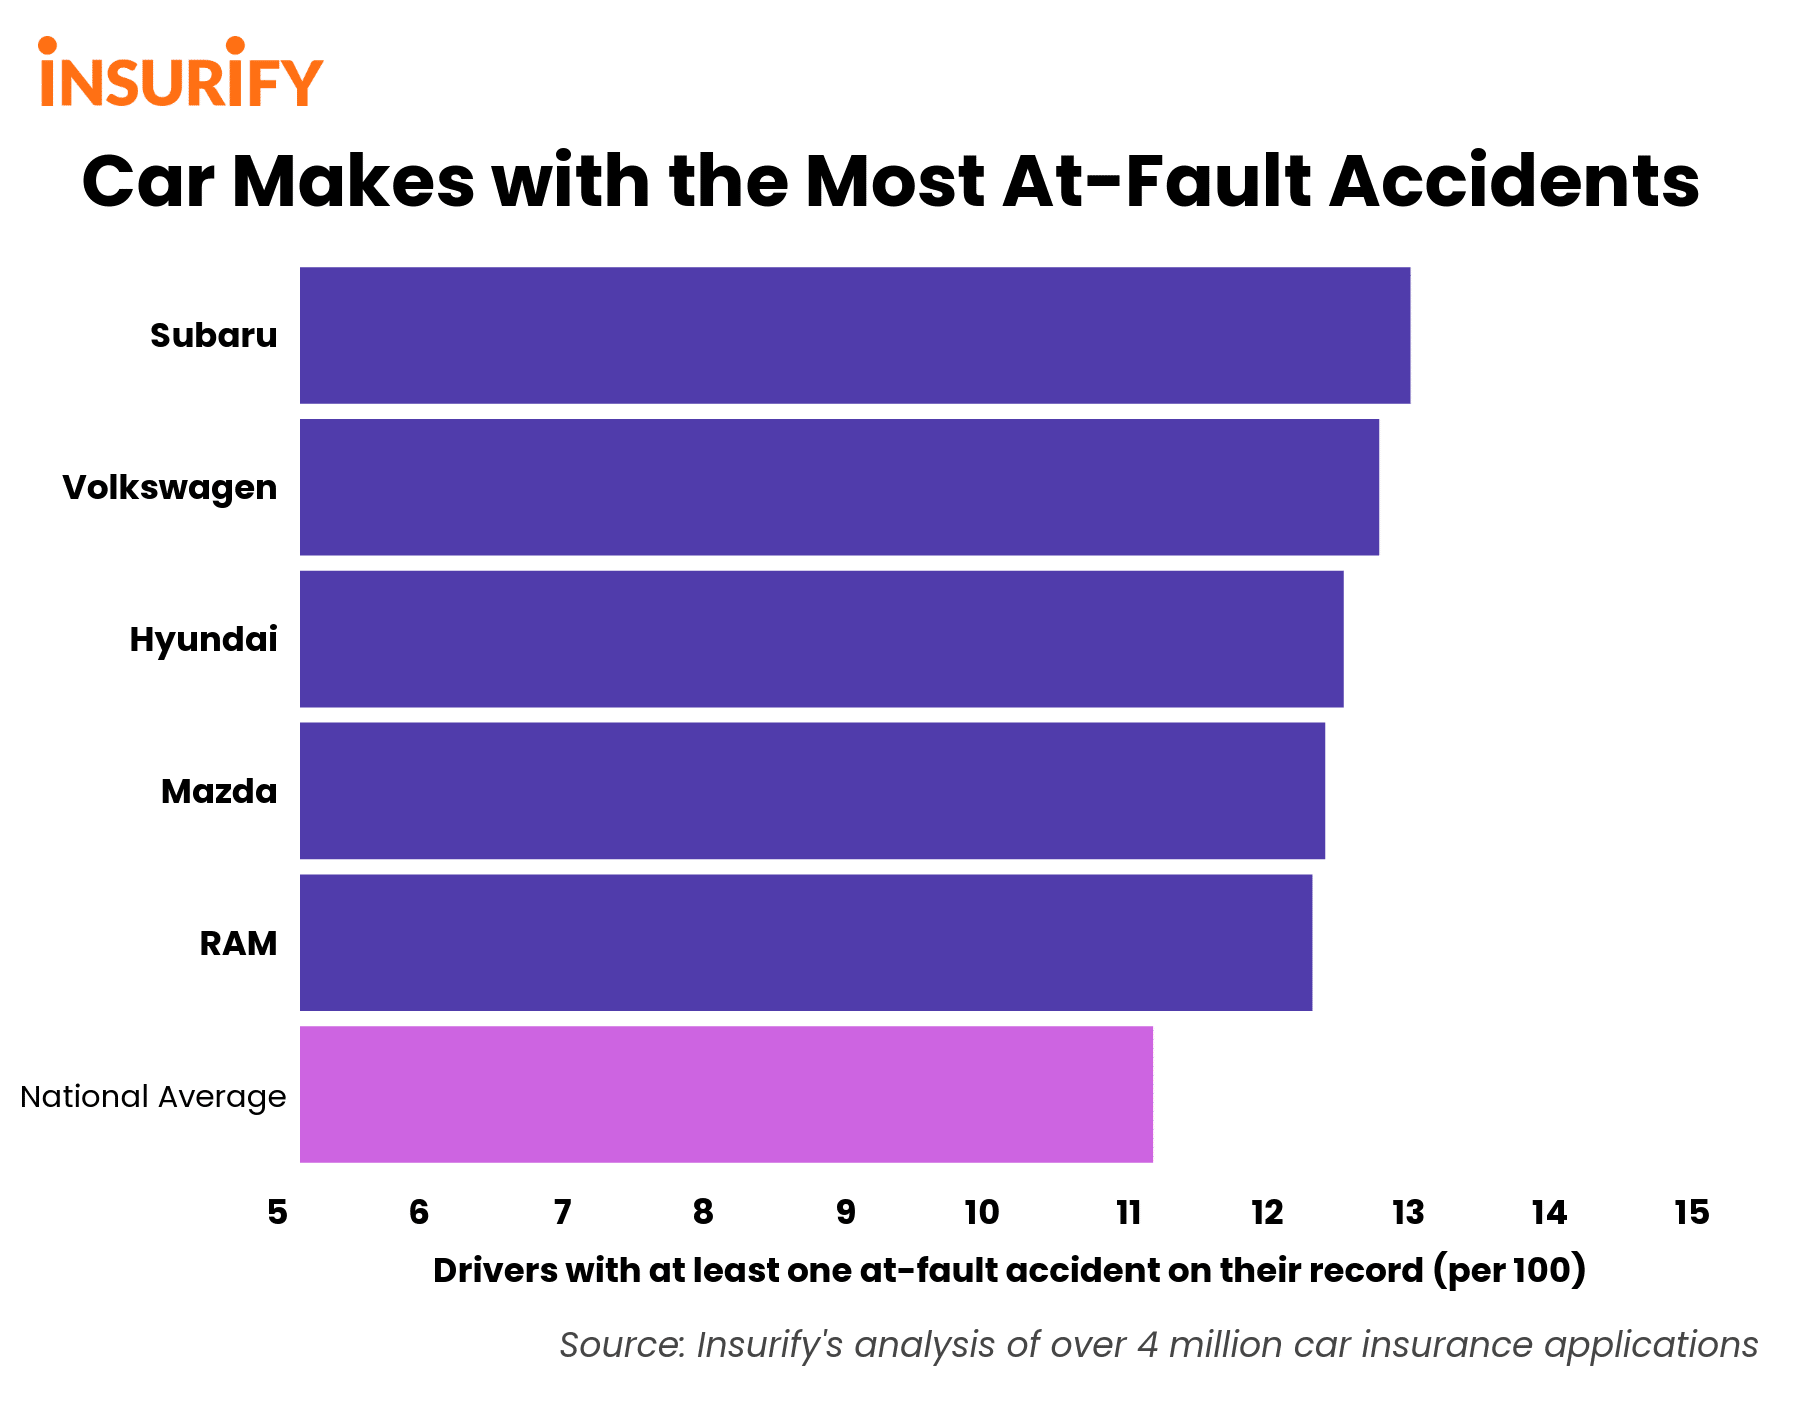 Bar graph depicting the 5 auto brands whose drivers cause car accidents at the highest rates.